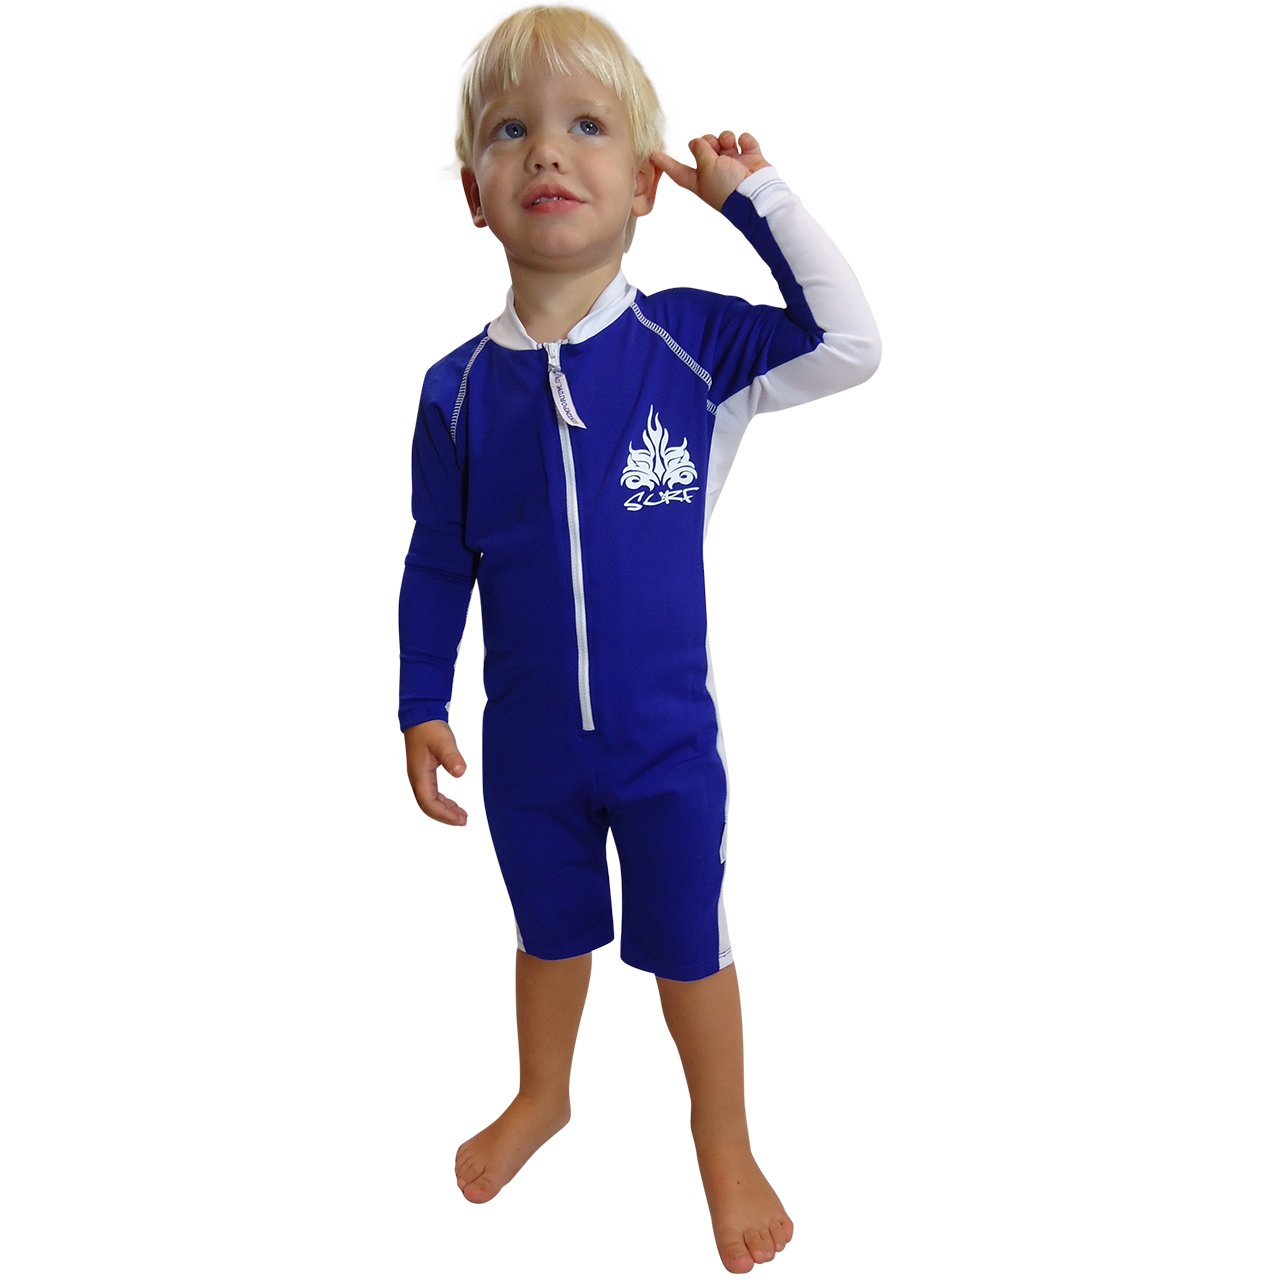 Sun Protective UV Swimsuit - Long Sleeves - SPF Protection - Boys Sun Suit Sun Emporium